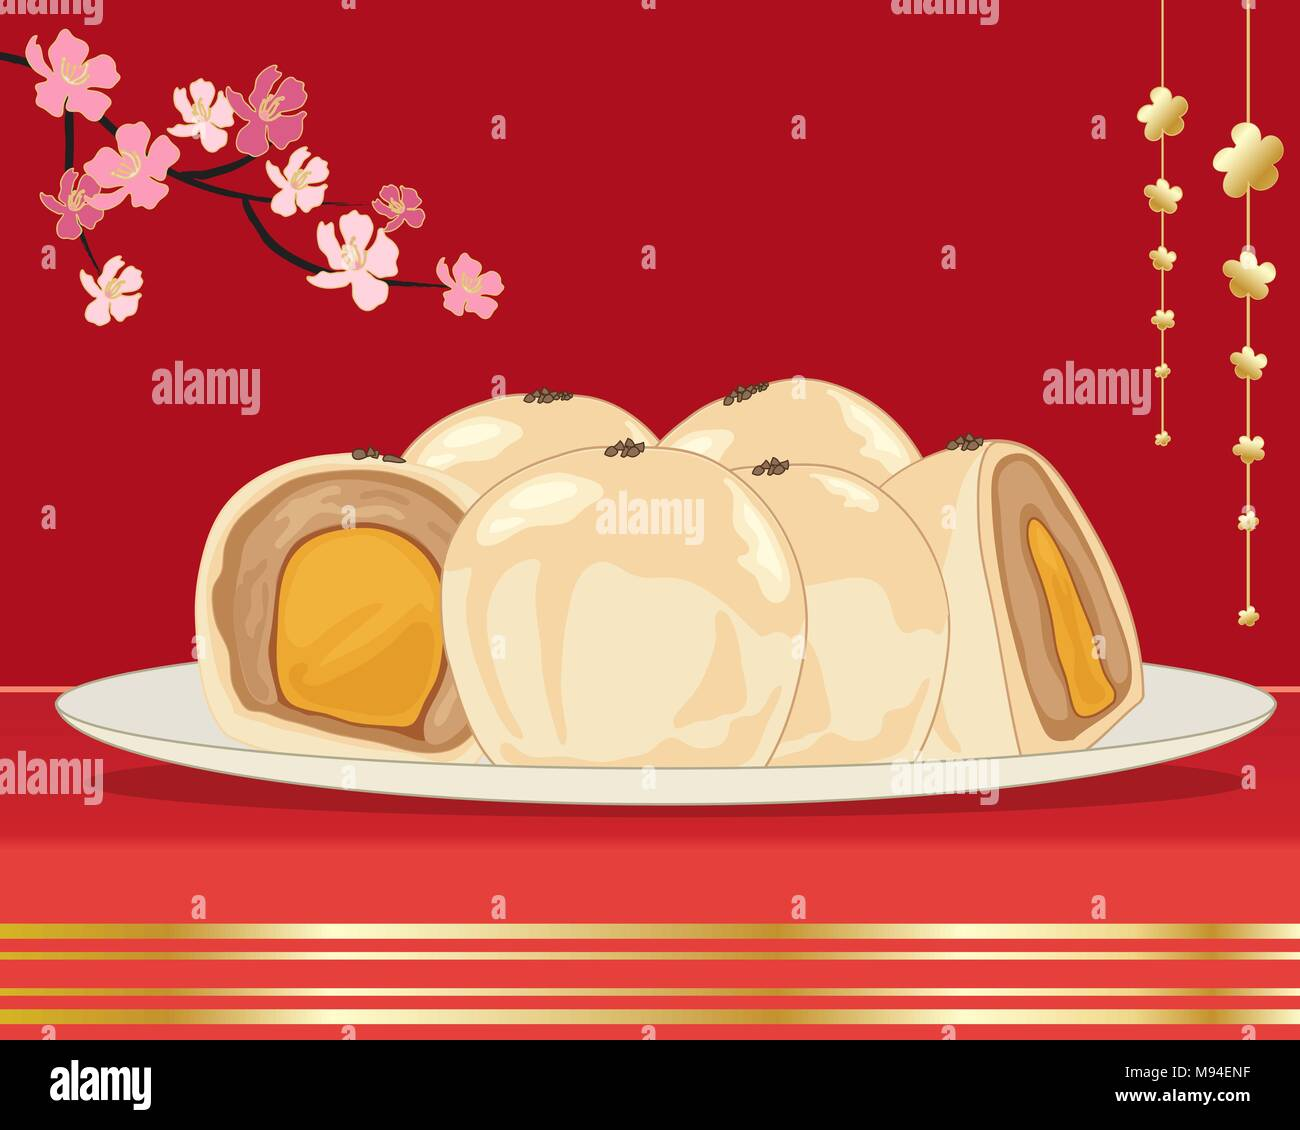 a vector illustration in eps 10 format of egg yolk cake from Taiwan on a white plate with whole and halves showing the filling Stock Vector